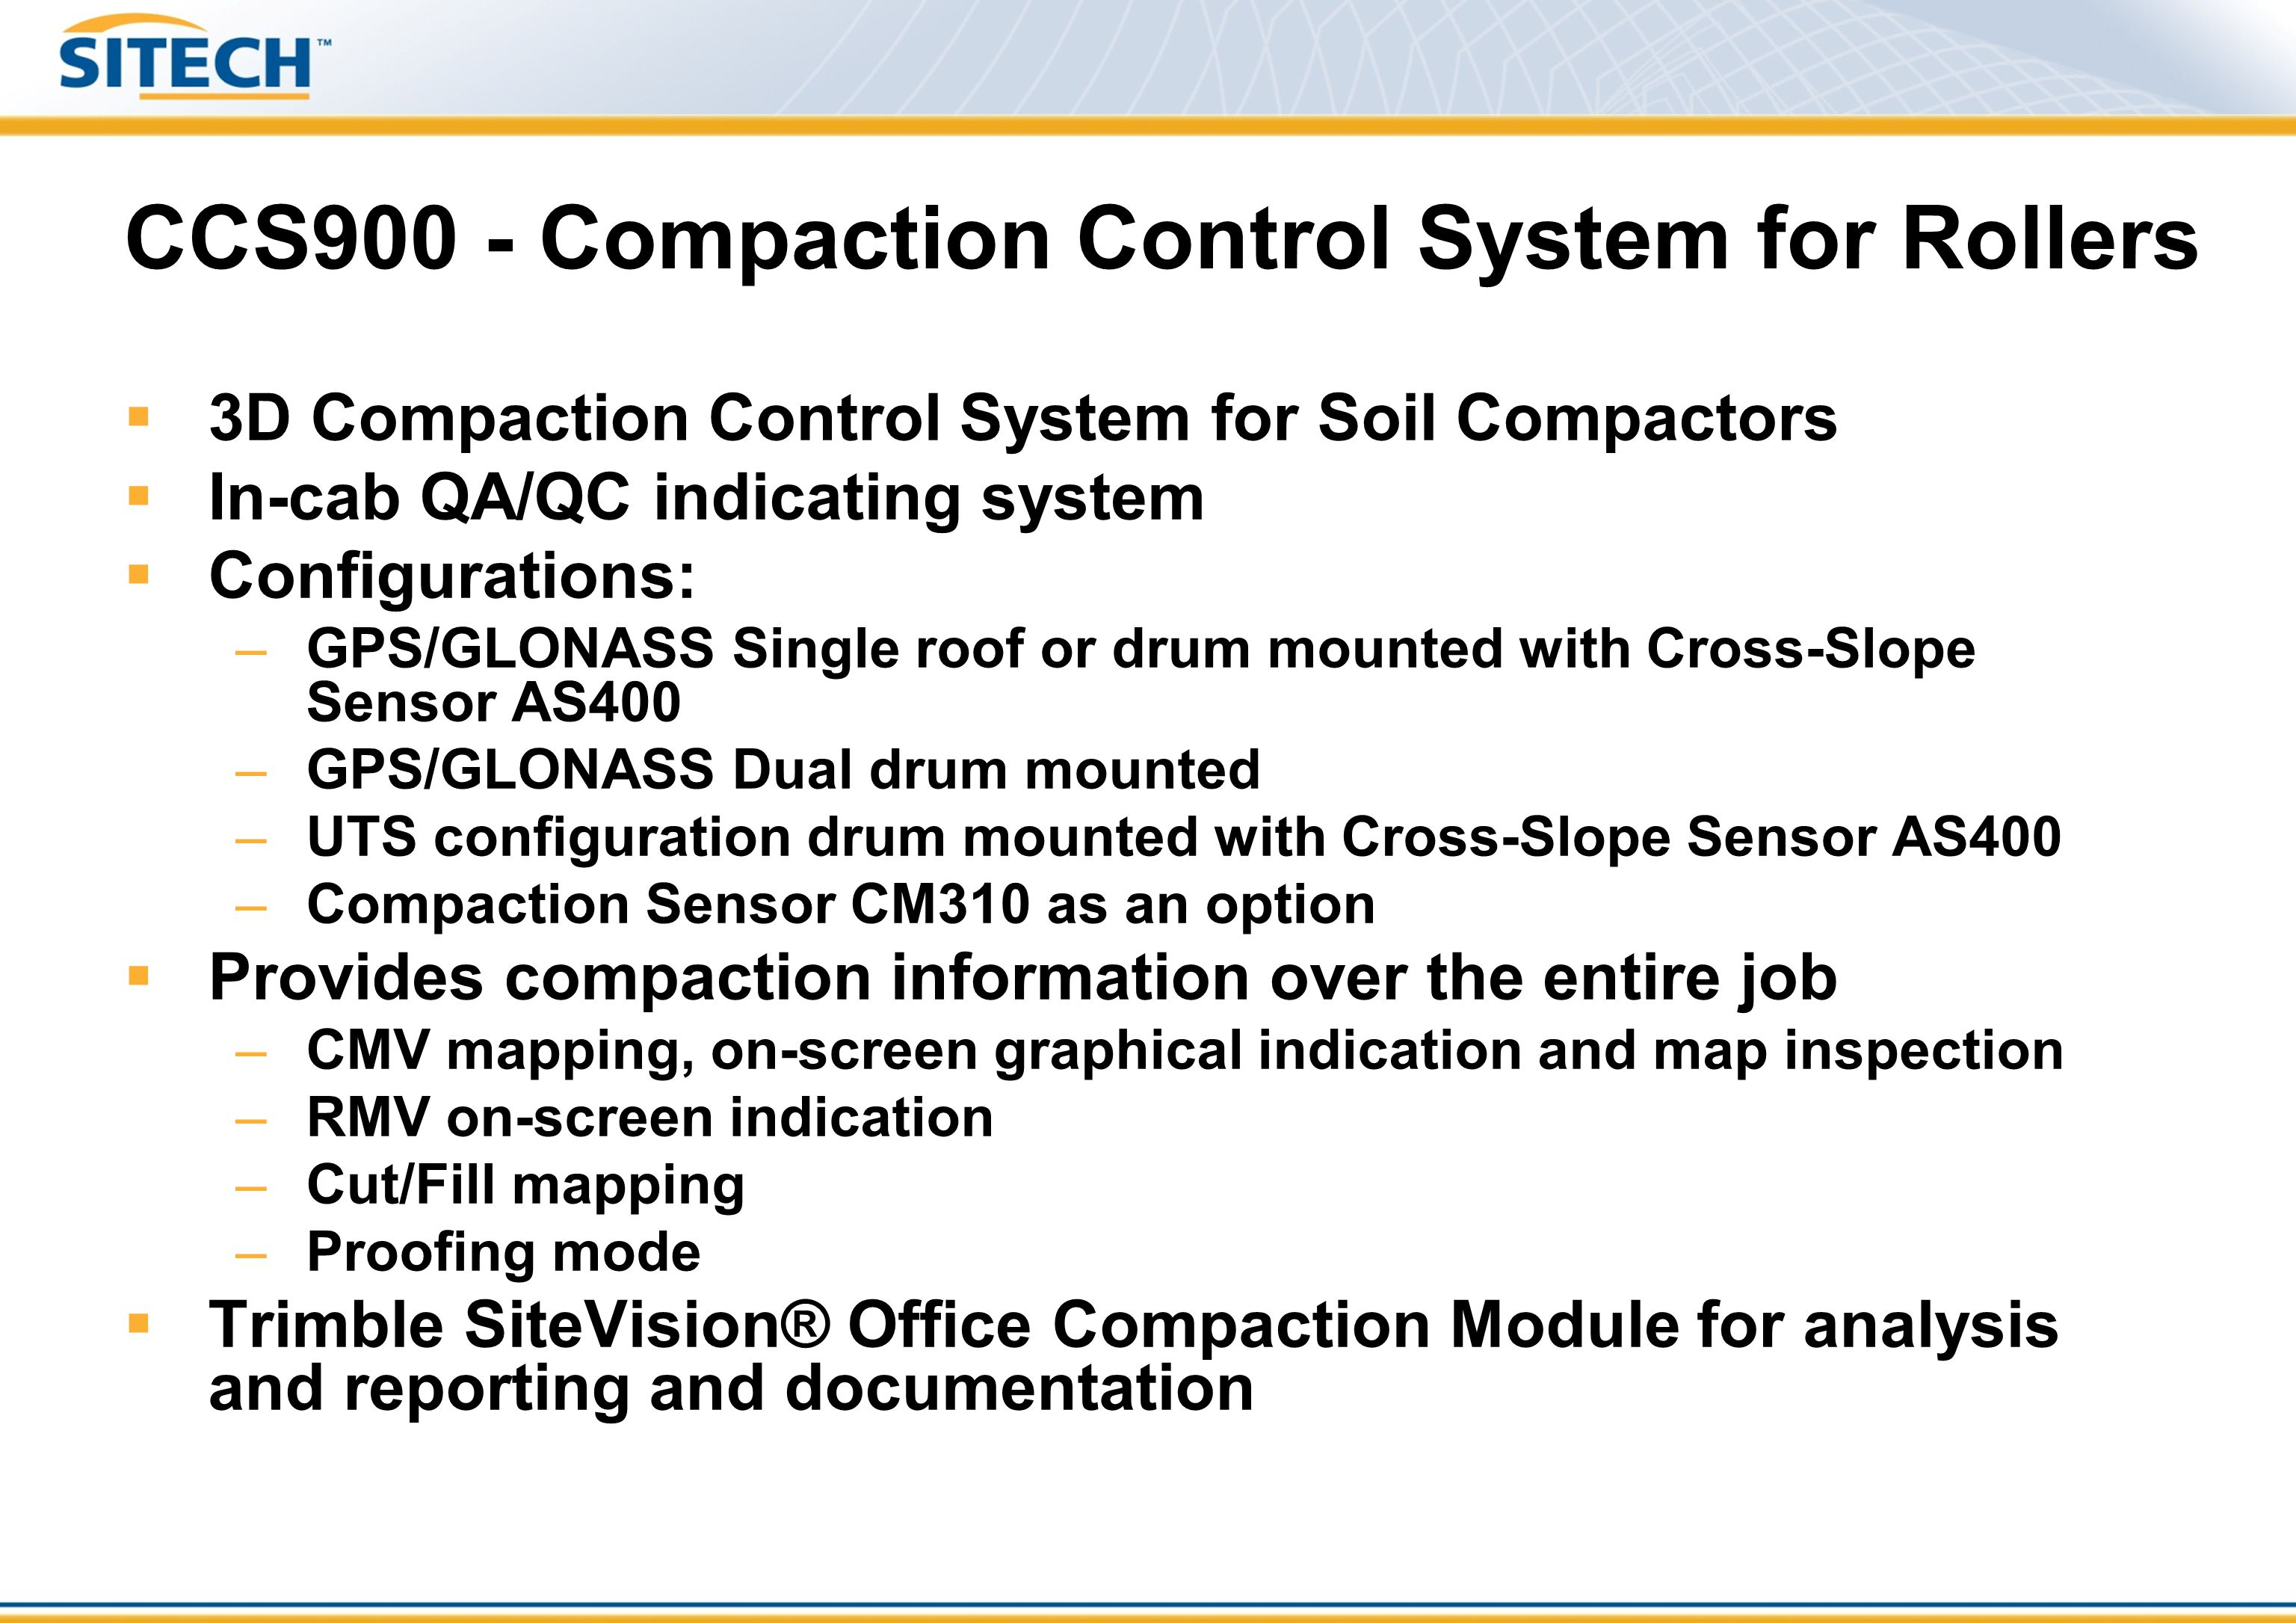 CCS900 - Compaction Control System for Rollers